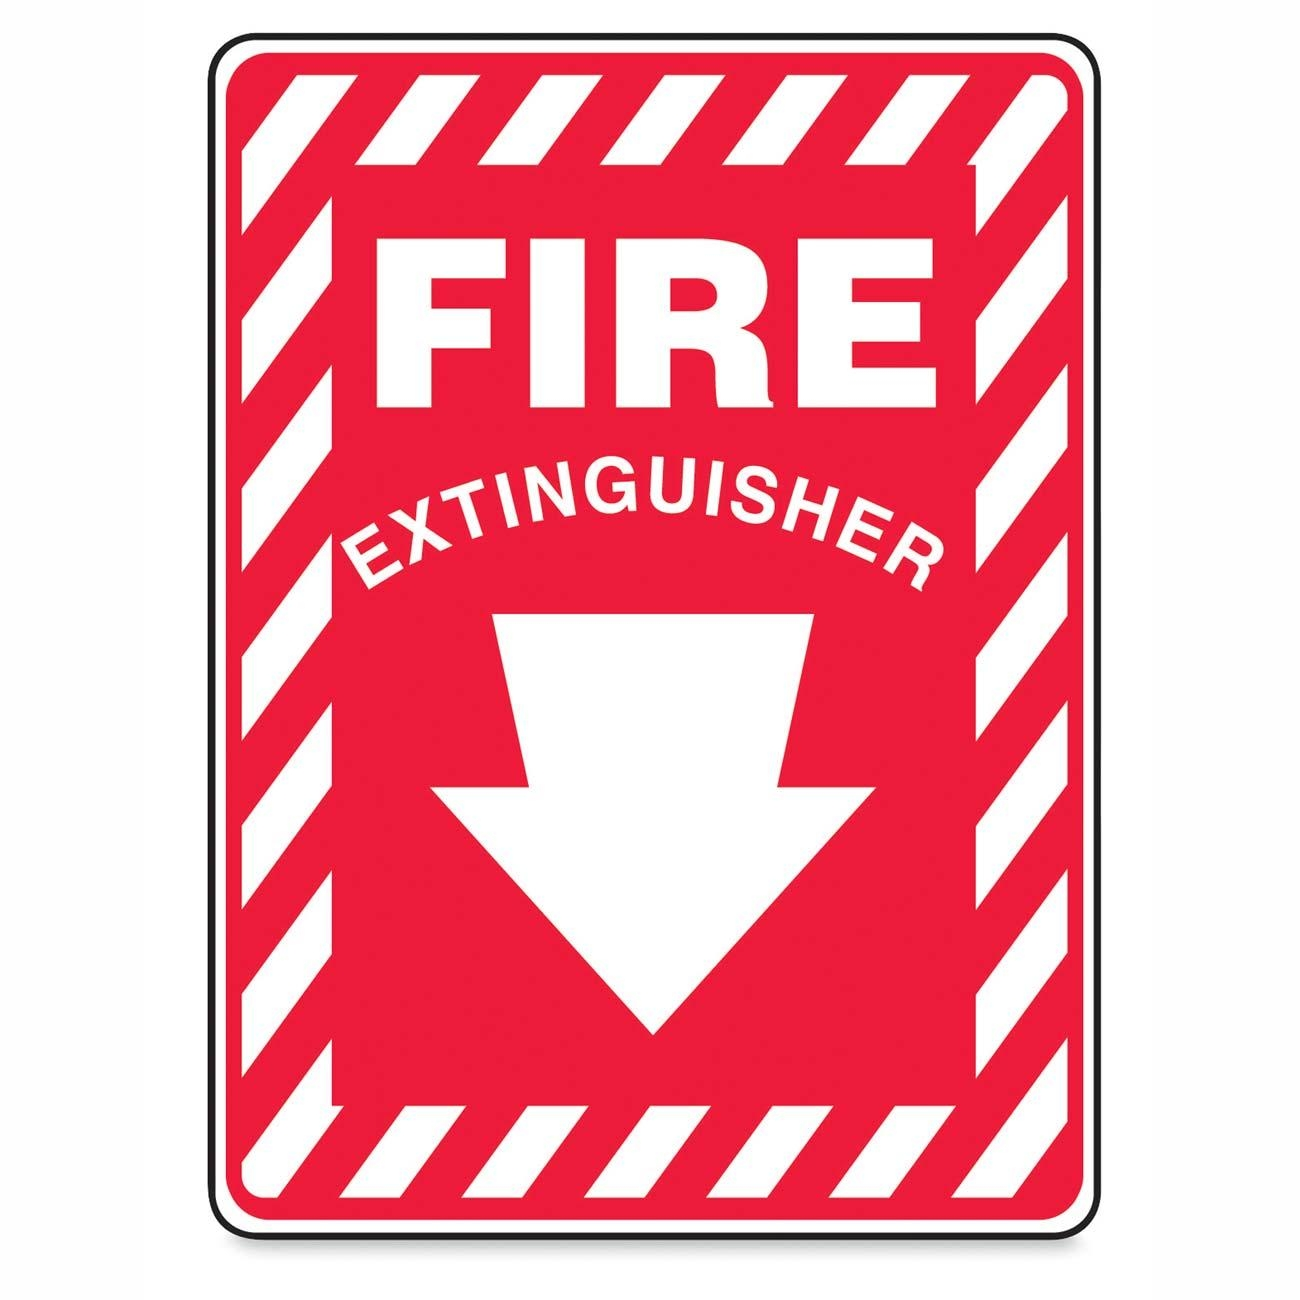 Fire extinguisher sign clipart clip library stock Free Printable Fire Extinguisher Signs, Download Free Clip Art, Free ... clip library stock